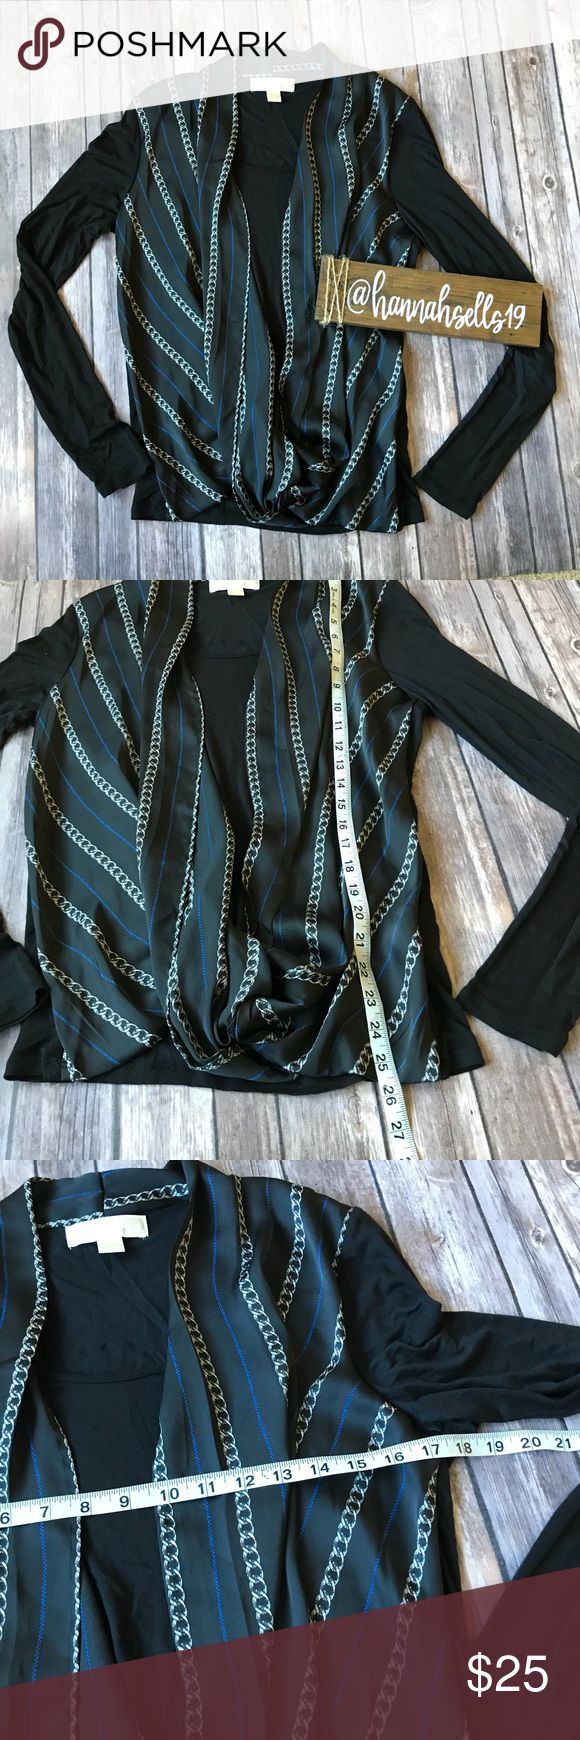 Michael Kors Layered Twist Blouse Size Medium Like new silky scooped and twisted blouse with soft under layer. This is perfect for a day at he office or looks great with skinny jeans 💠From a clean and smoke free home!💠 Add to a bundle to get a private discount💠Free Gift with $25+ Purchase 💠 Discount ALWAYS Available on 2+ items💠 No trades, holds, modeling or transactions off of Poshmark.💠 Michael Kors Tops